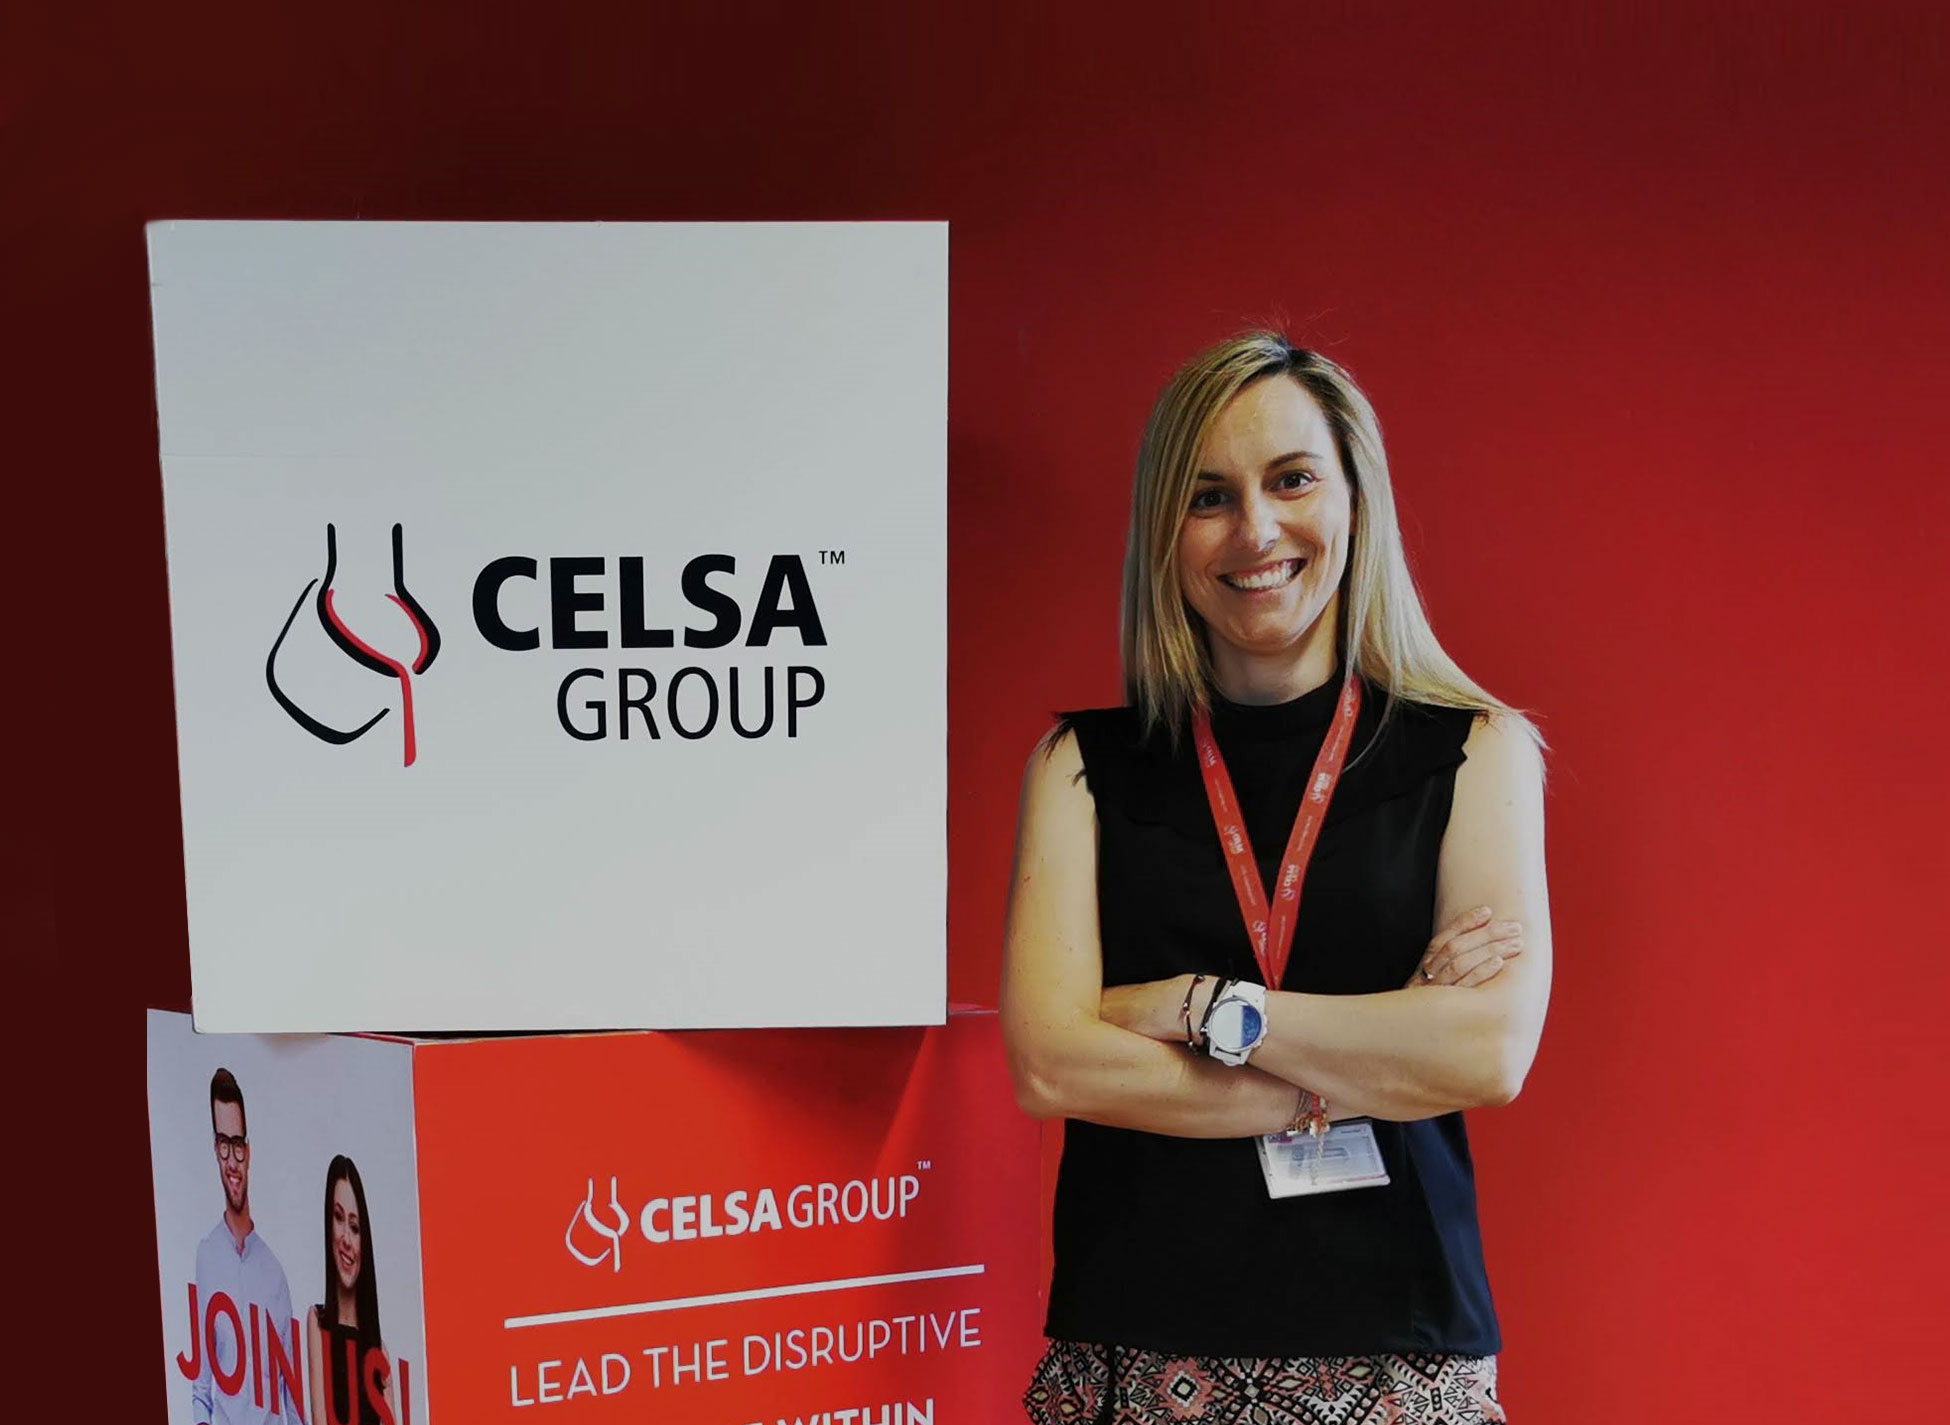 Industria 4.0 CELSA GROUP Anna Casals CEAM